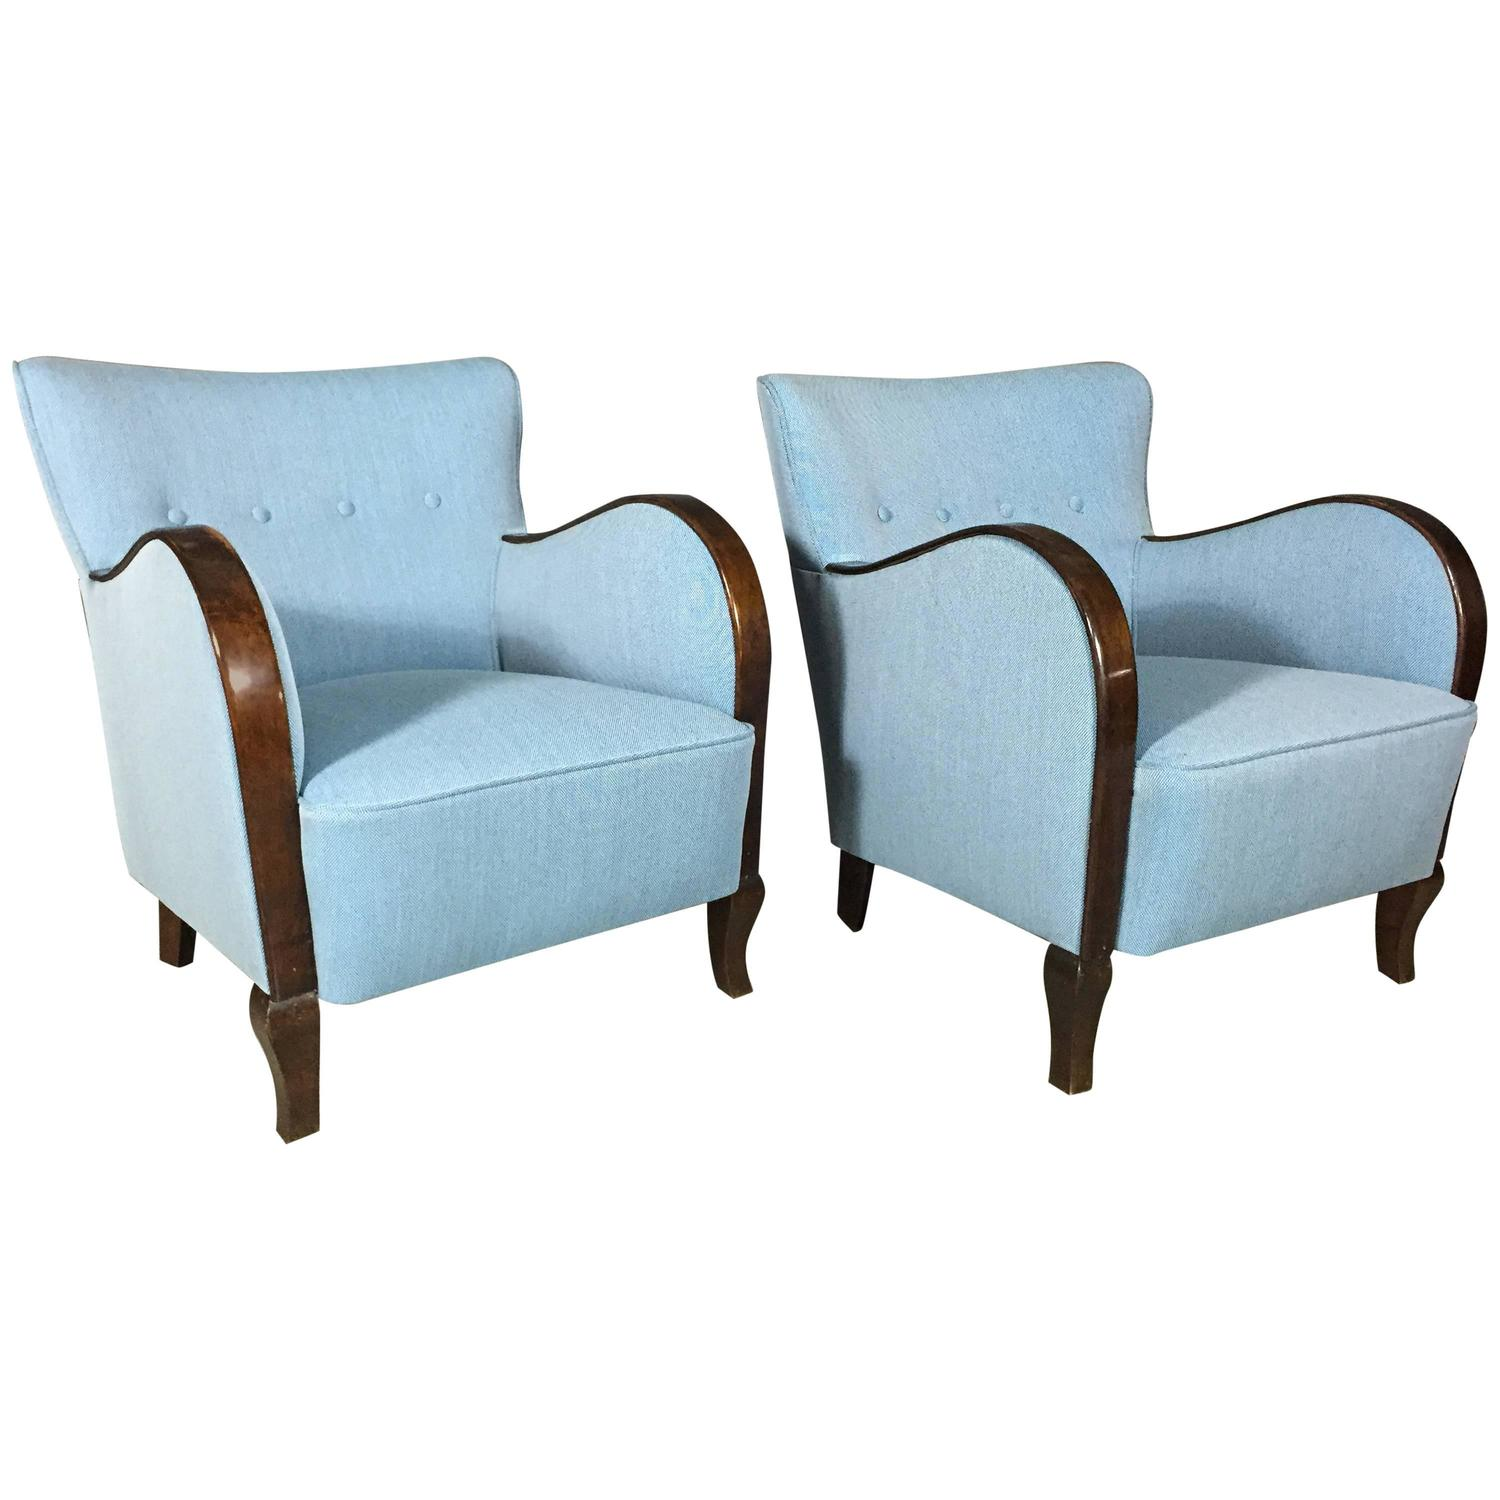 French Club Chair Handsome Pair Of French Club Chairs Circa 1940 New